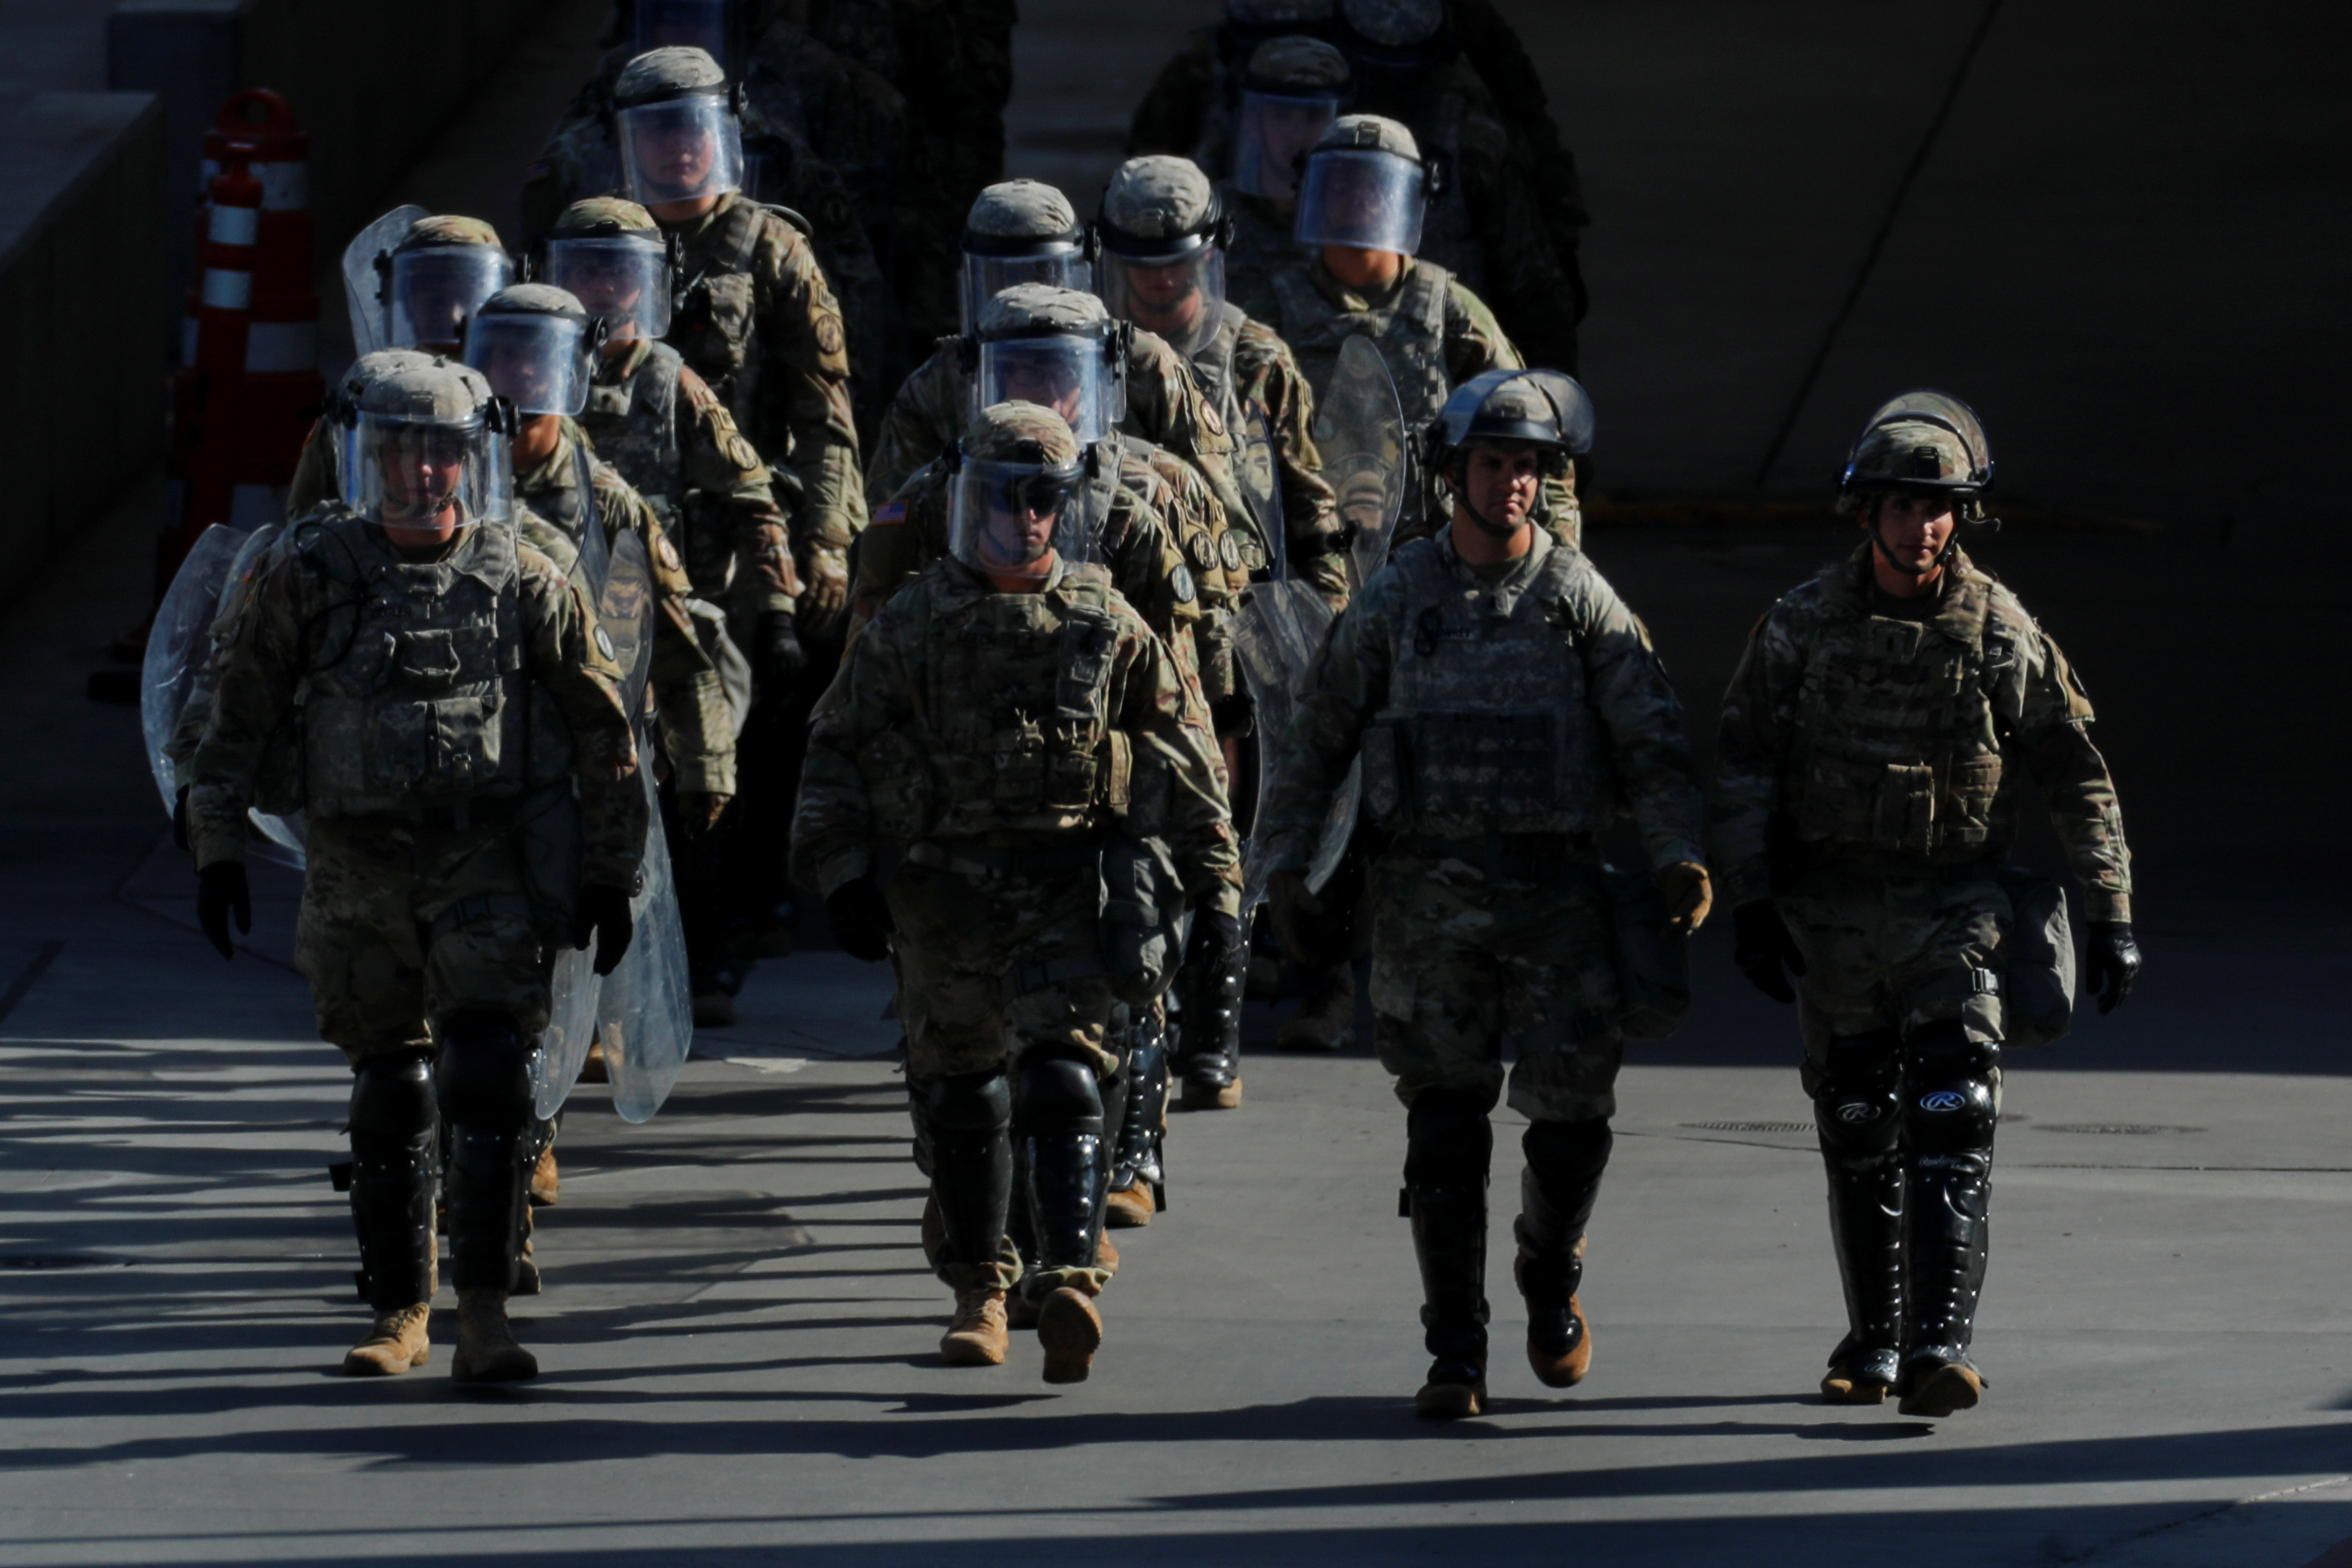 FILE PHOTO: U.S. Military troops return from a test deployment with U.S. Customs and Border Protection agents after conducting a large-scale operational readiness exercise at the San Ysidro port of entry with Mexico in San Diego, California, U.S., January 10, 2019. REUTERS/Mike Blake